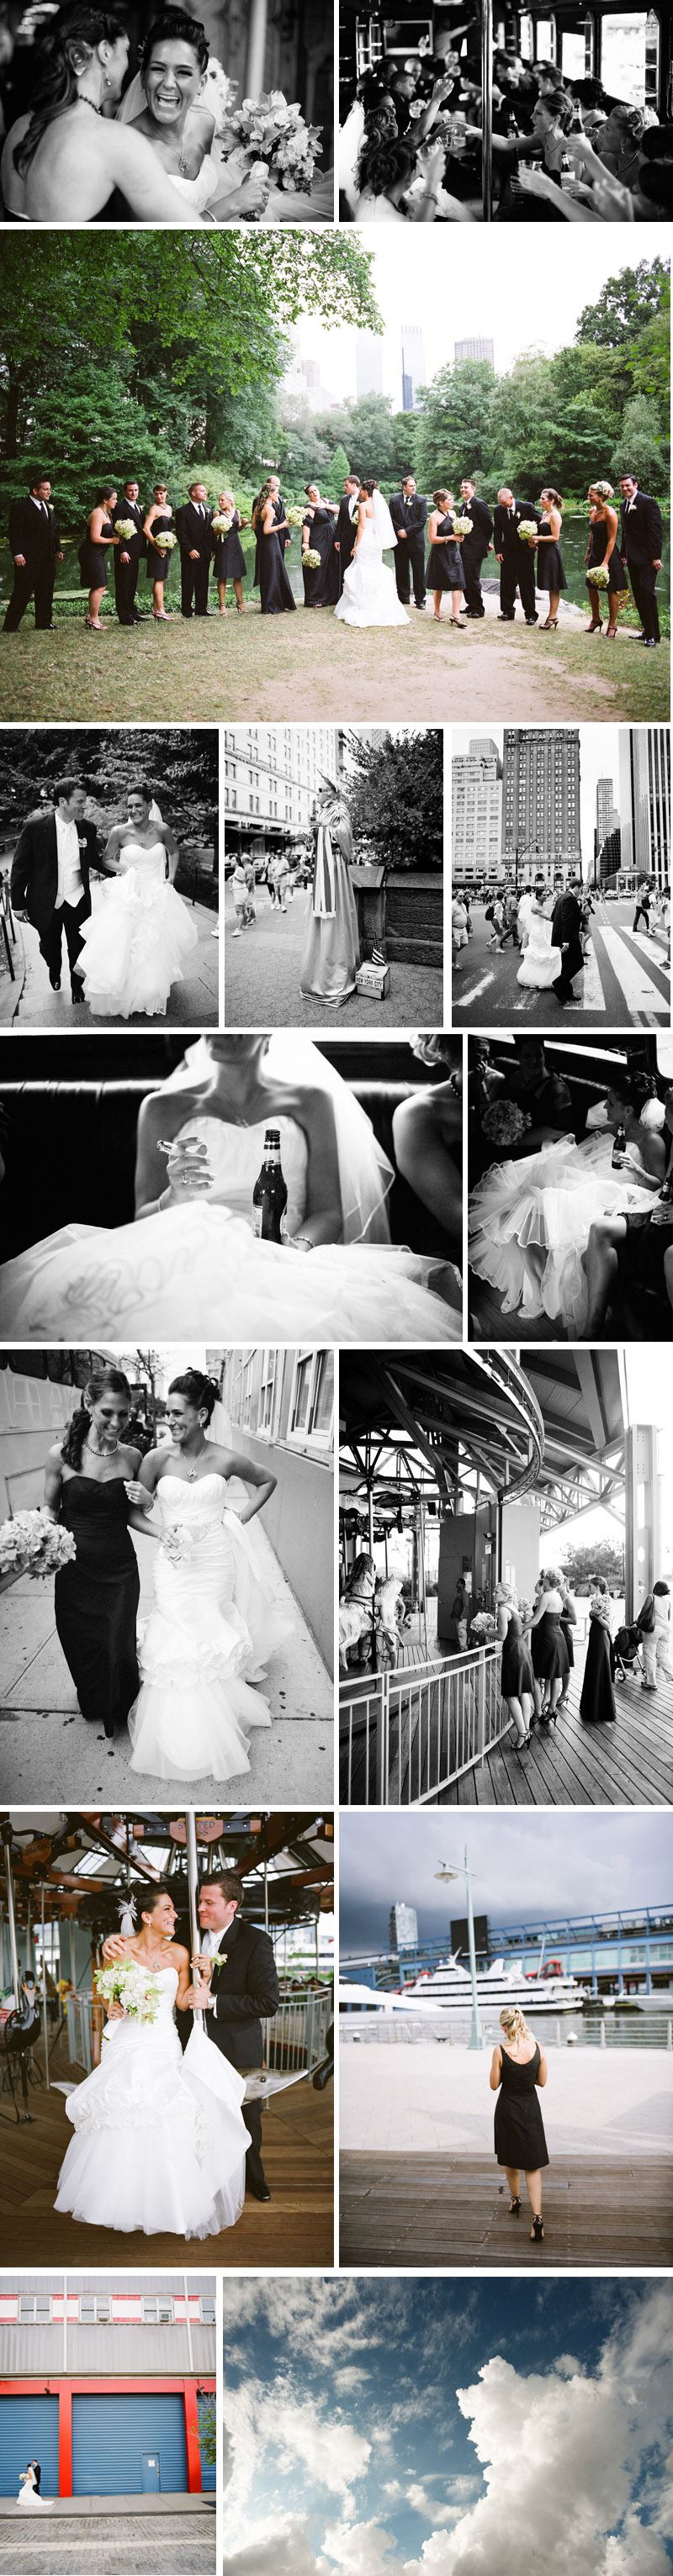 Jackie and Jeff New York City wedding at Pier 60 Chelsea Piers